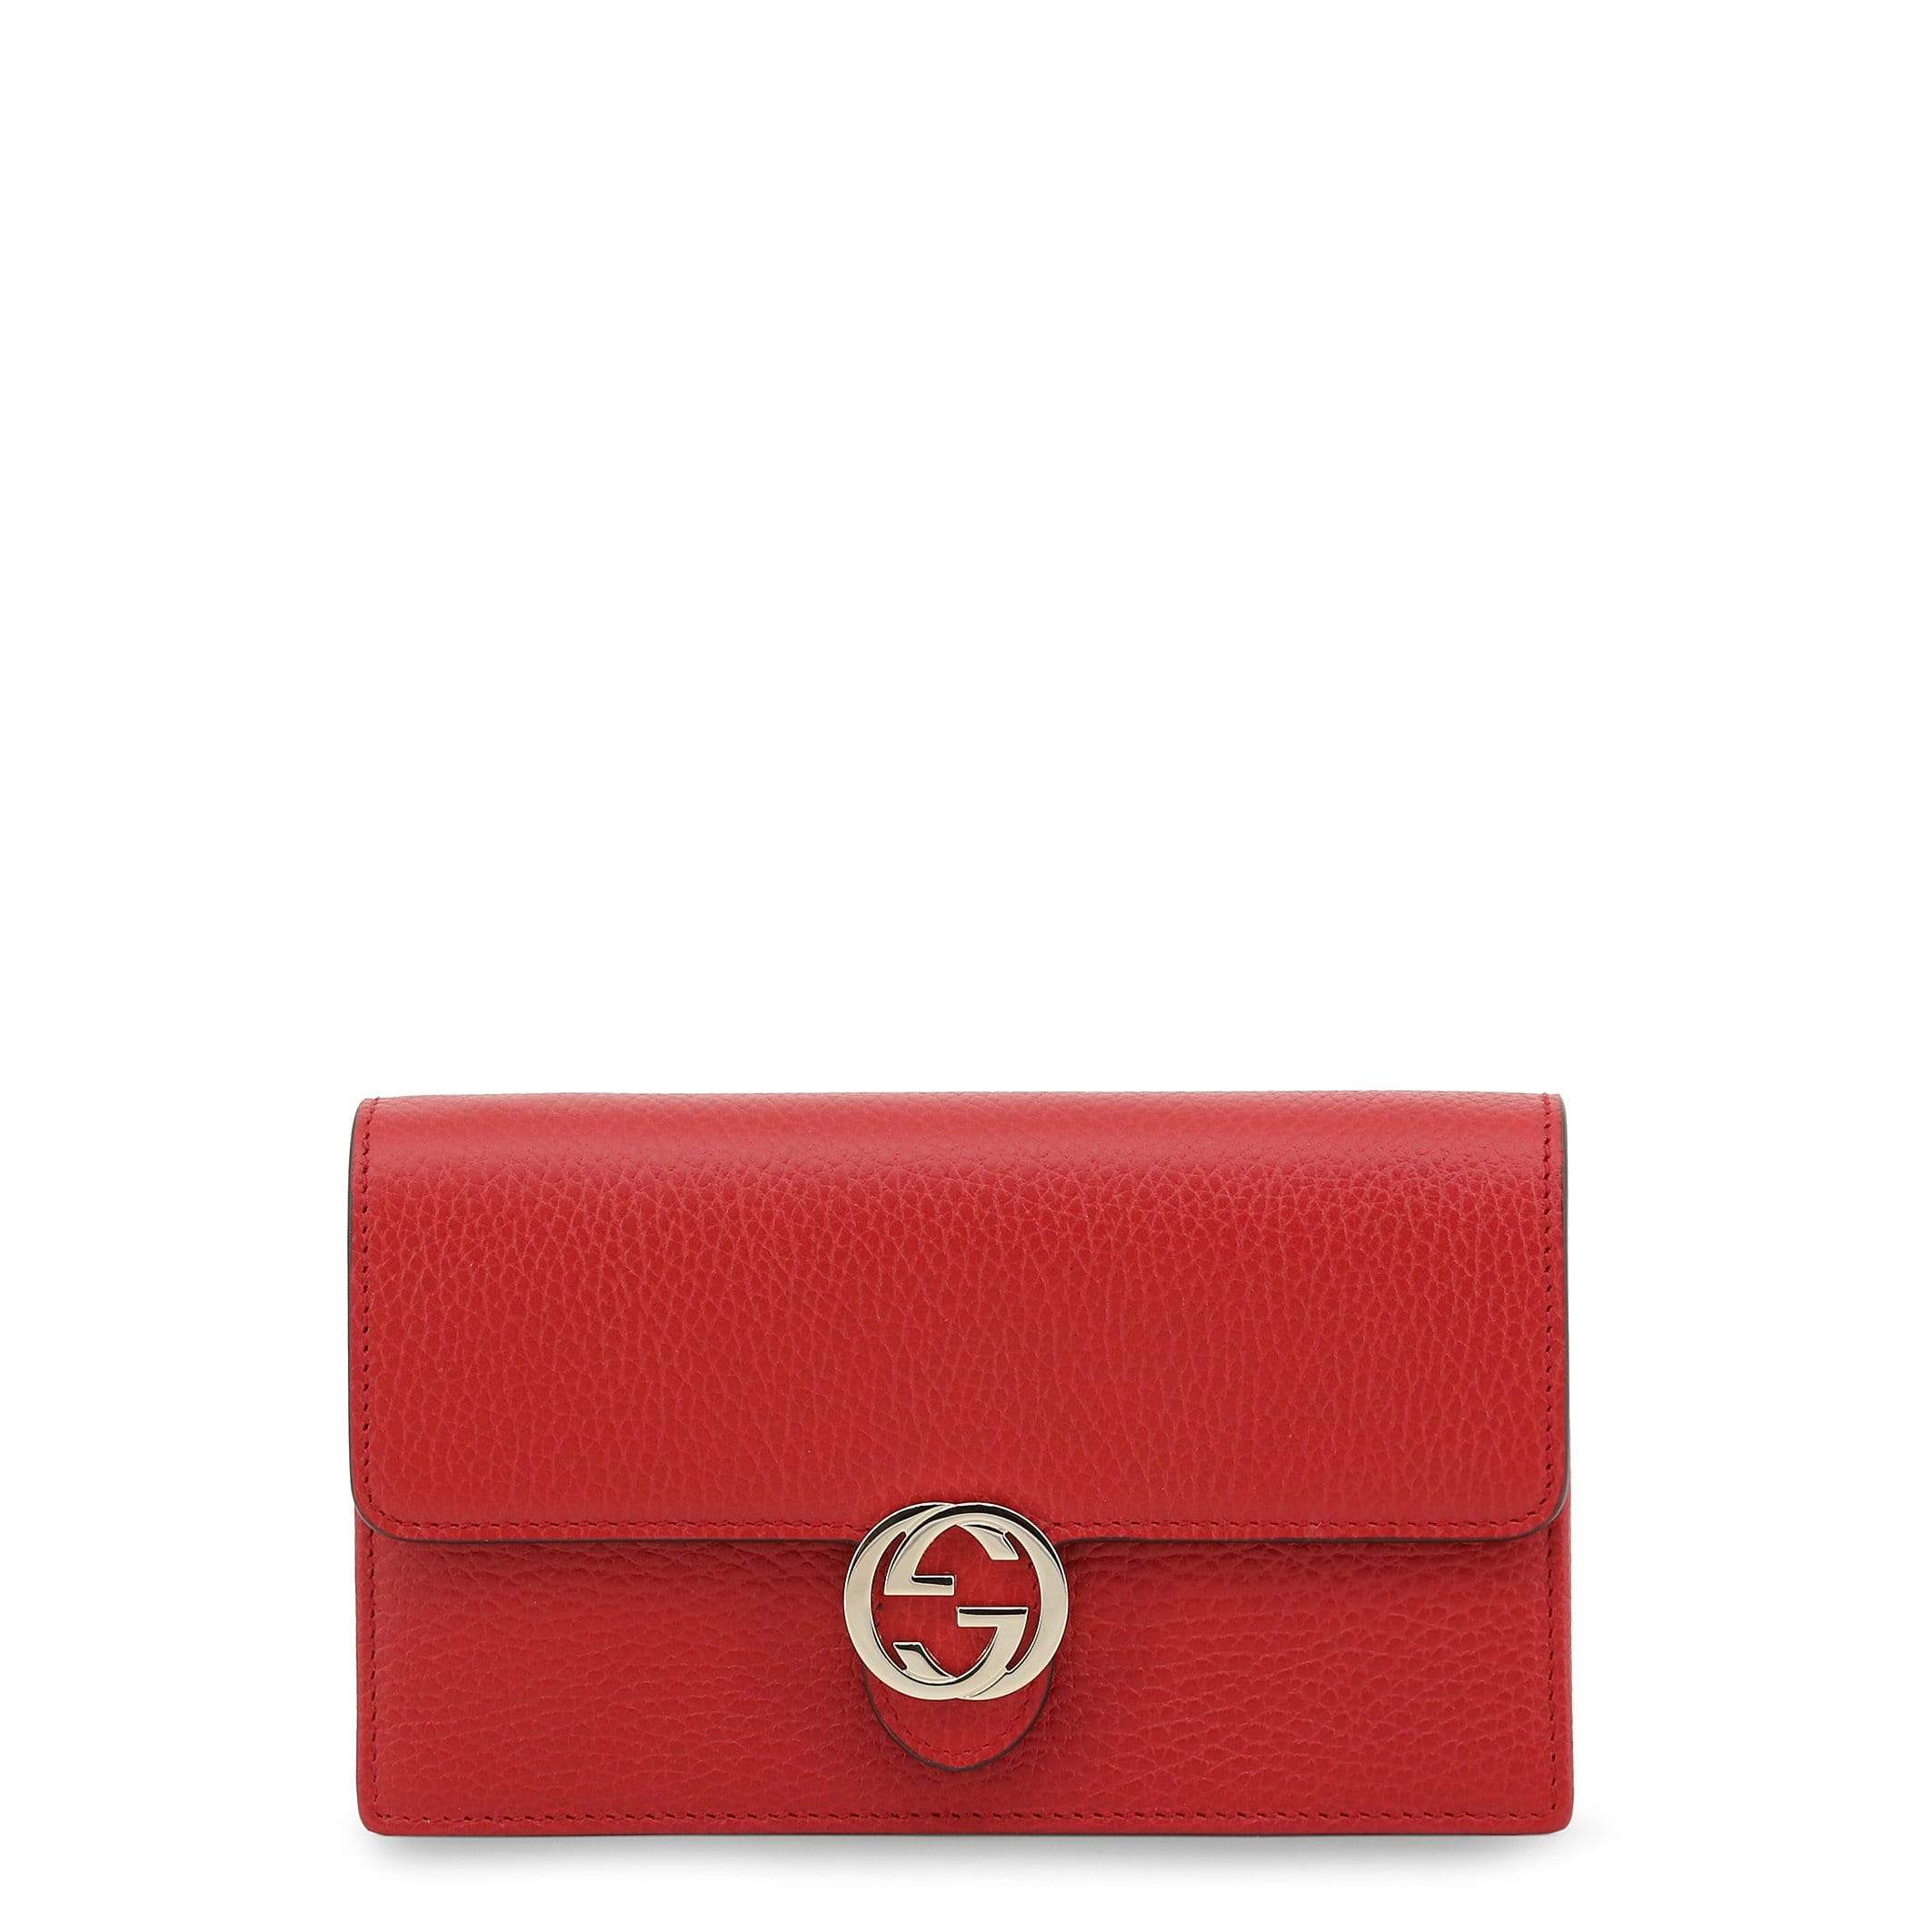 Gucci Bags Crossbody Bags red / NOSIZE Gucci - 510314_CA00G